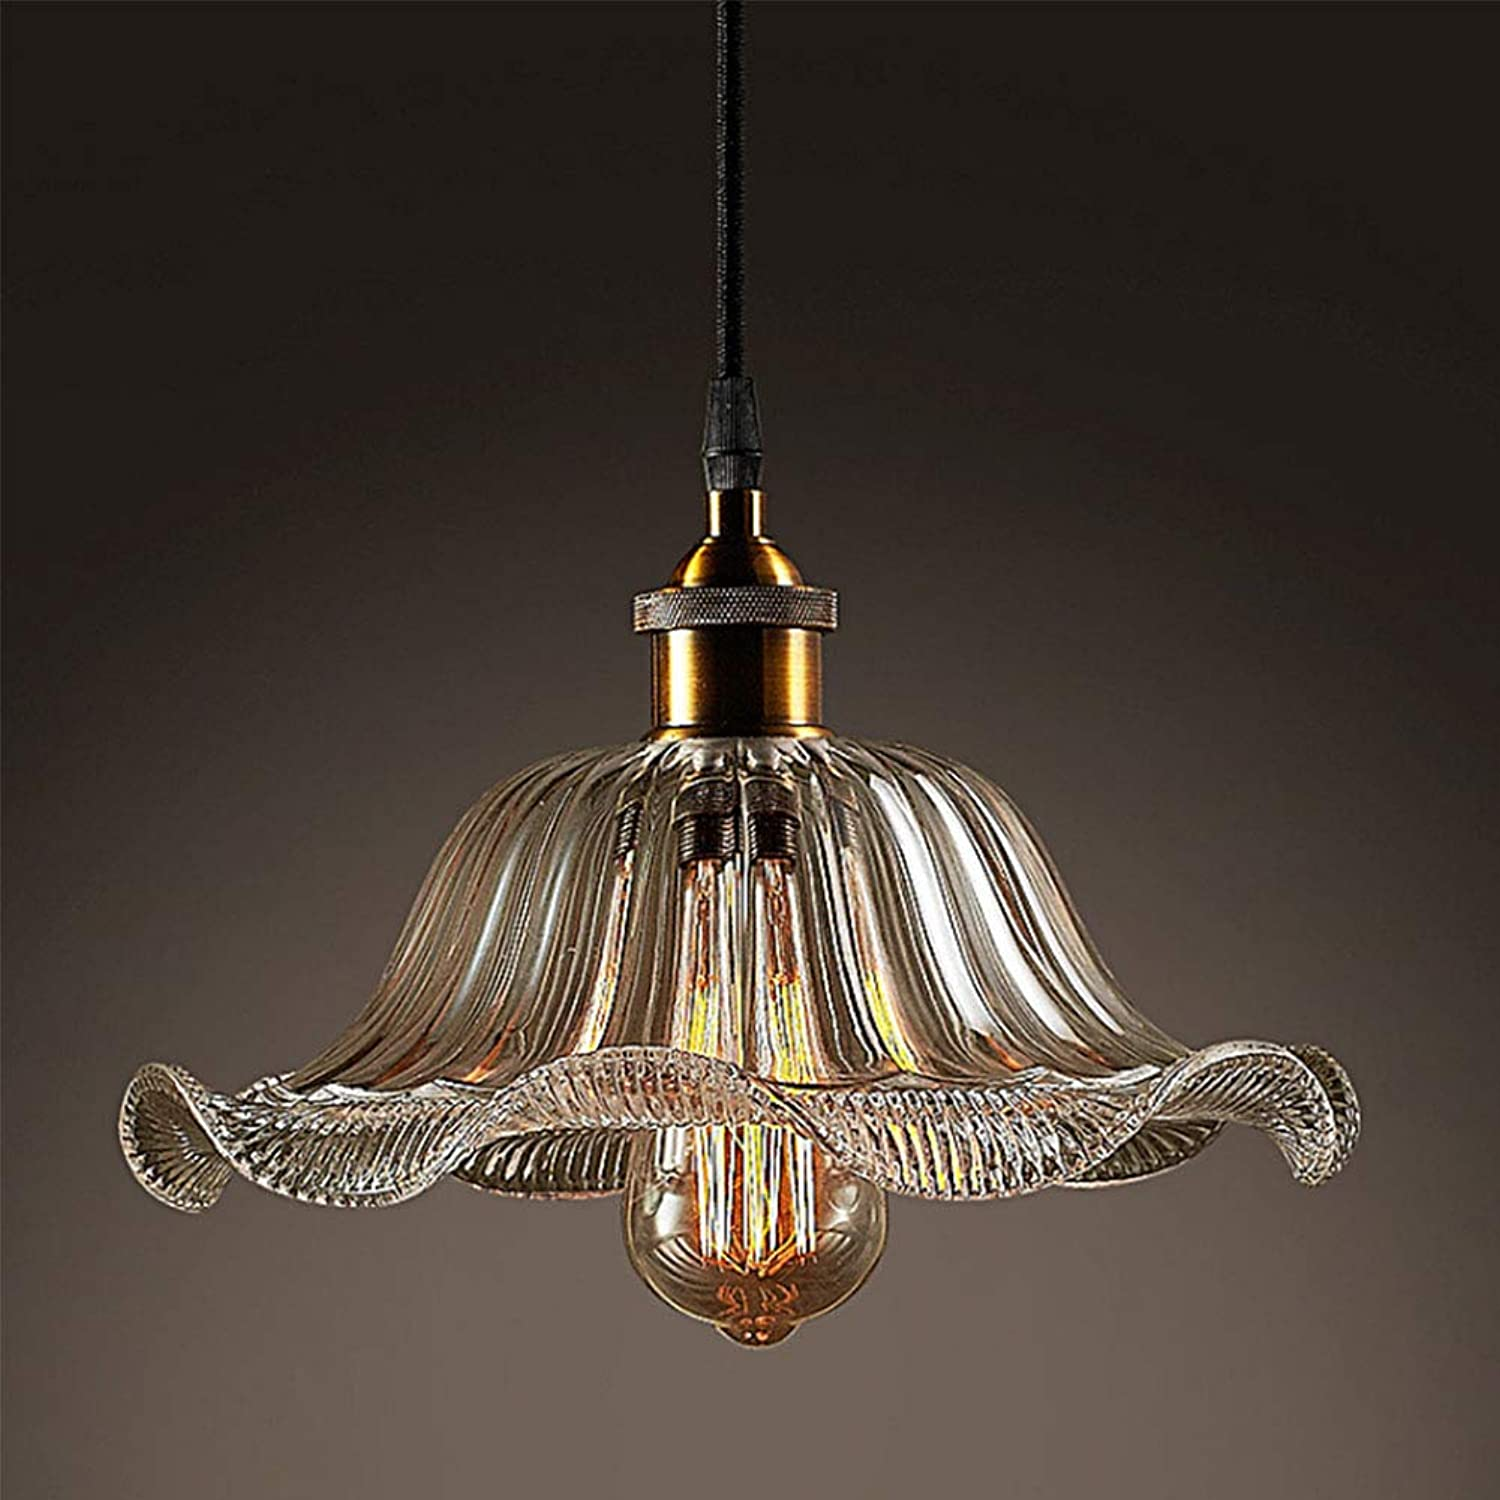 LL Pendant Lights Single Heads Glass Industrial Wind Retro Simplicity Chandelier for Dining Room Cafe Bar Bedroom Lighting,Clear,300X1000MM